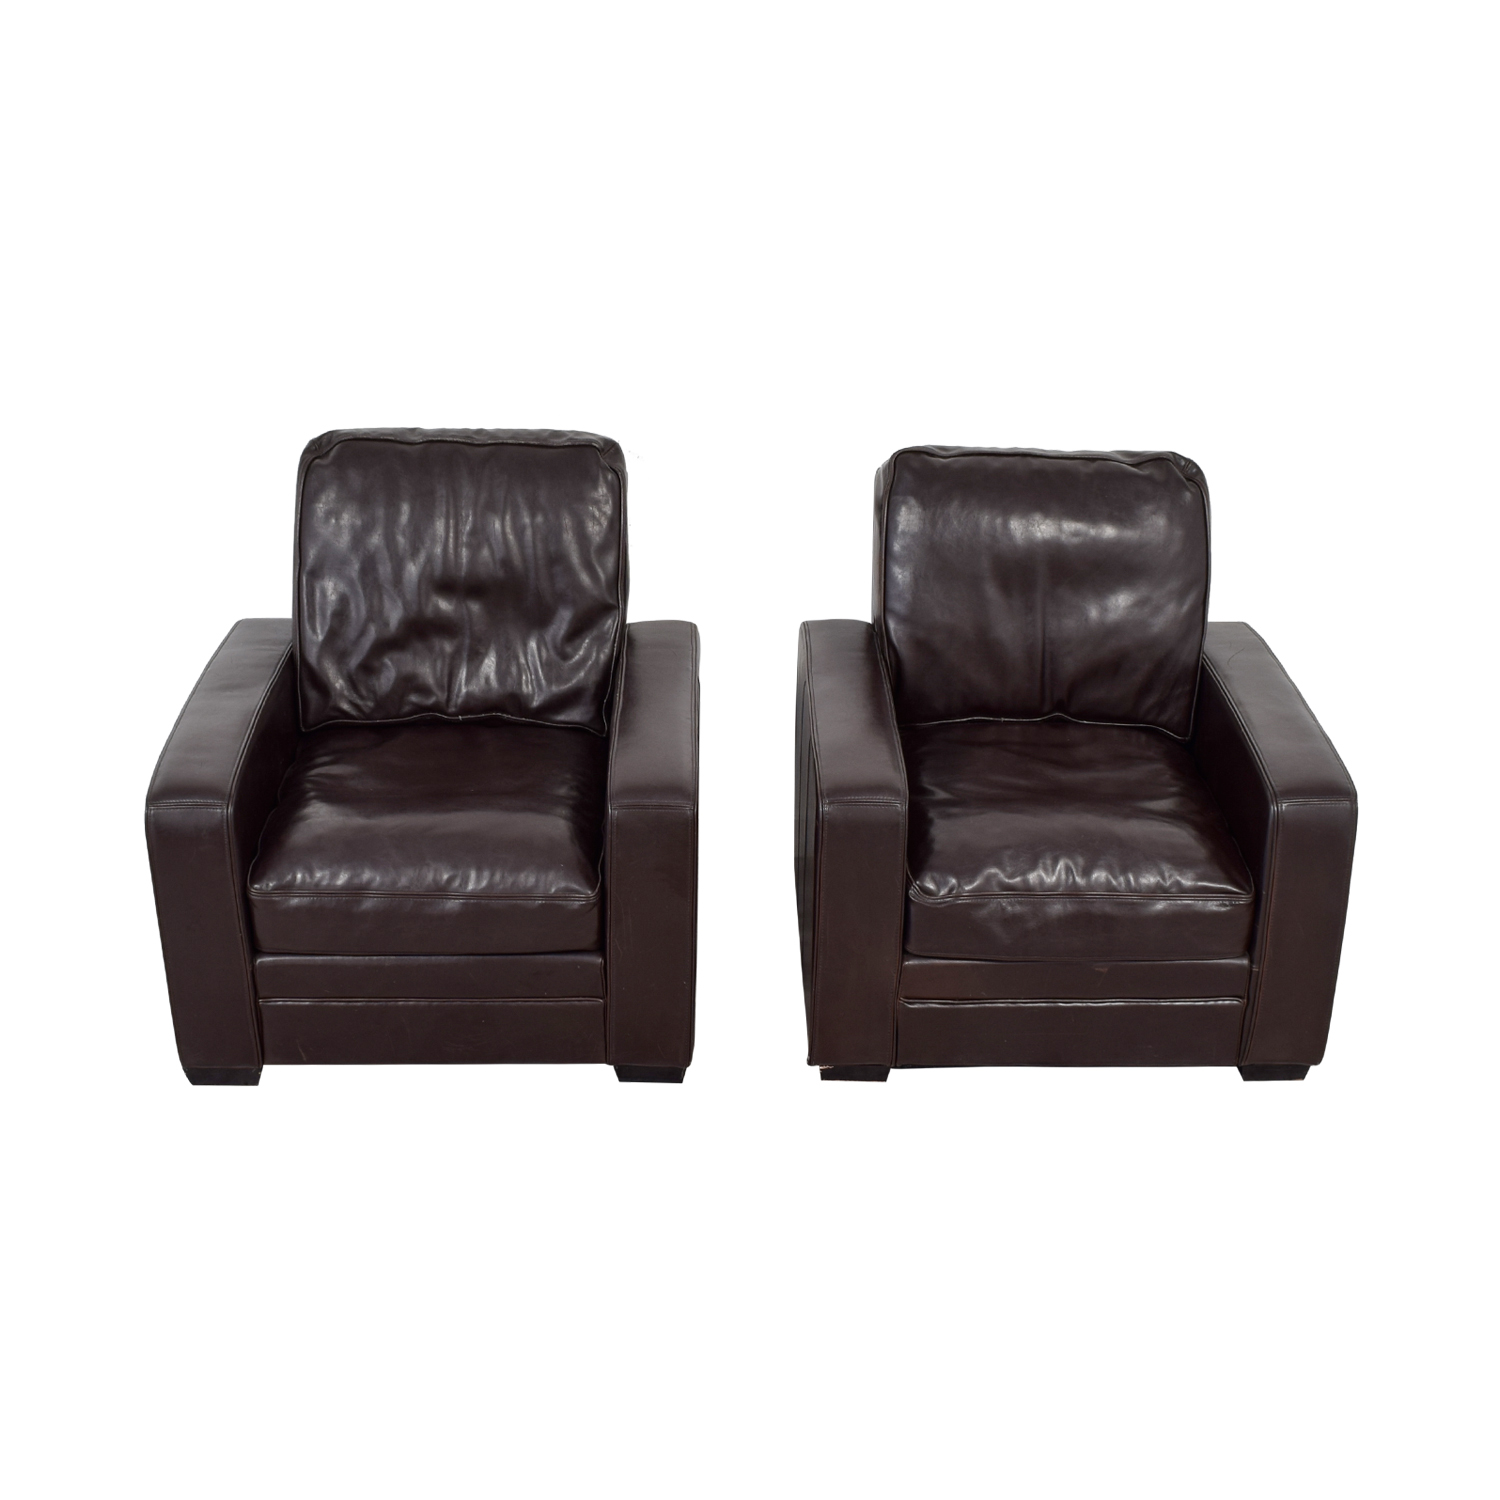 Overstock Accent Chairs: Overstock Overstock Brown Leather Accent Chairs